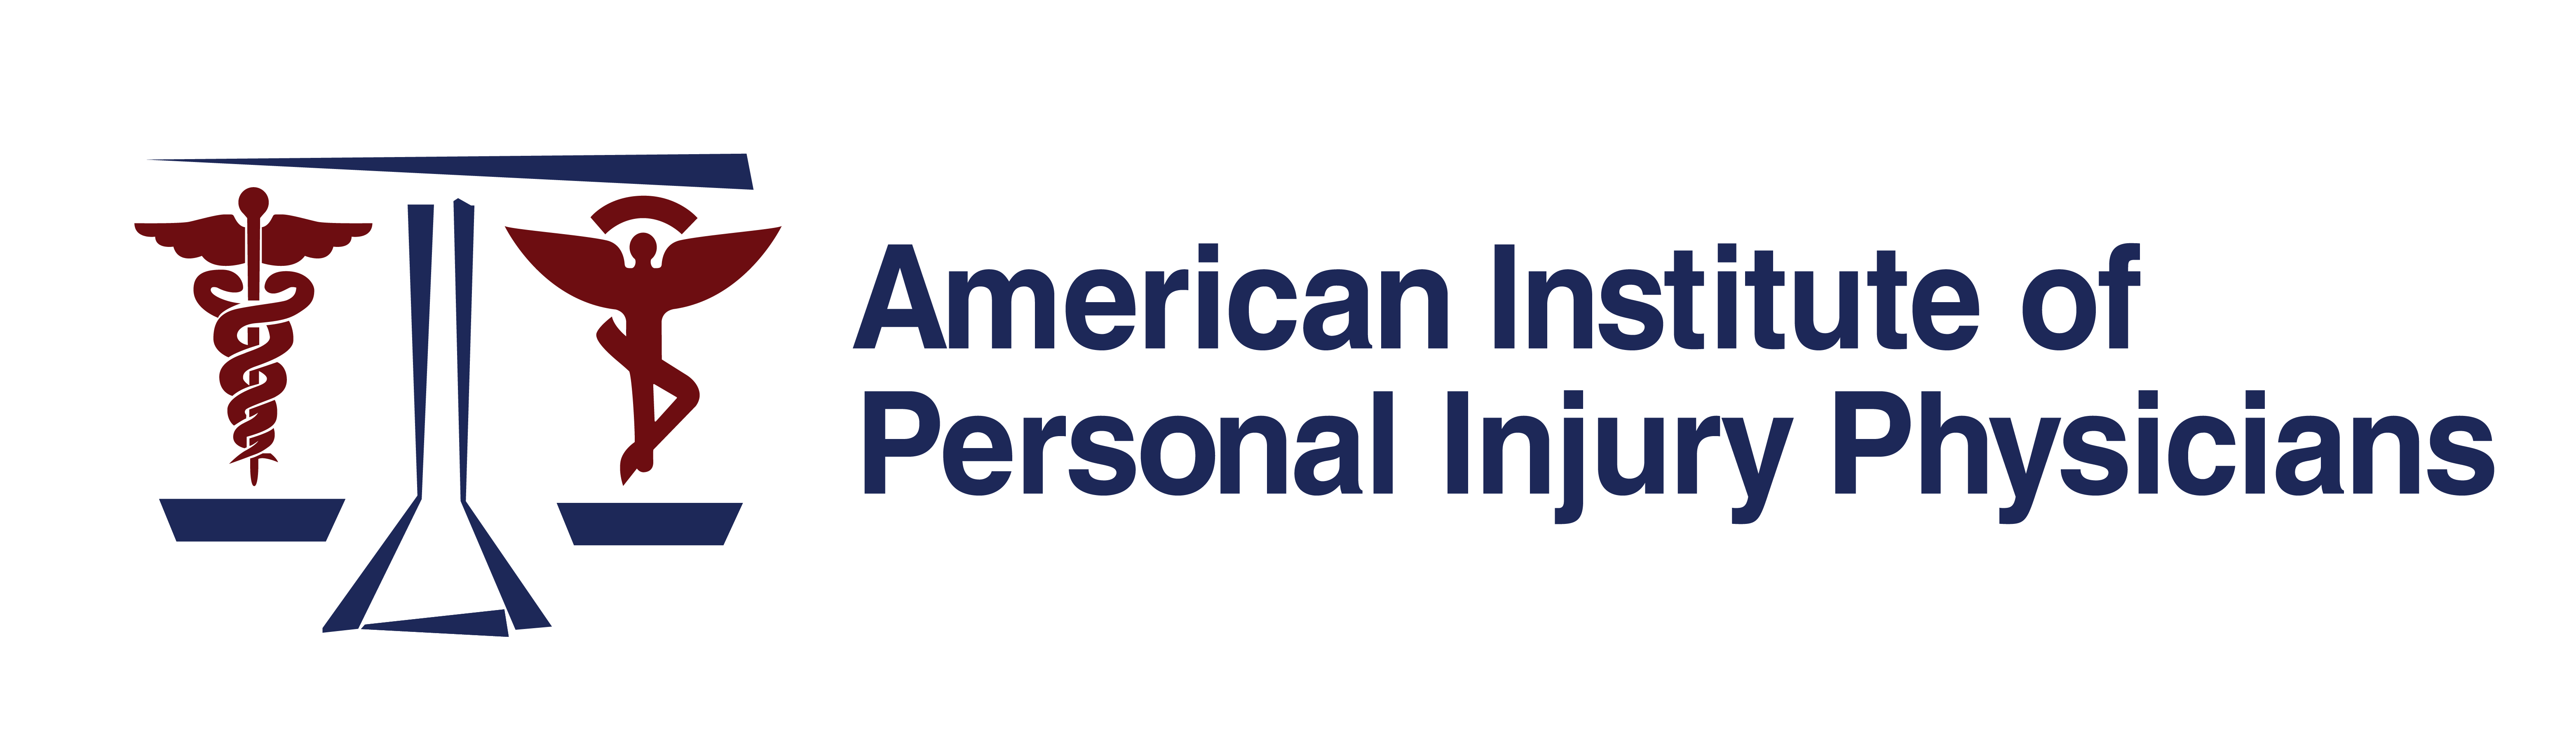 American Institute of Personal Injury Physicians (AIPIP) Logo